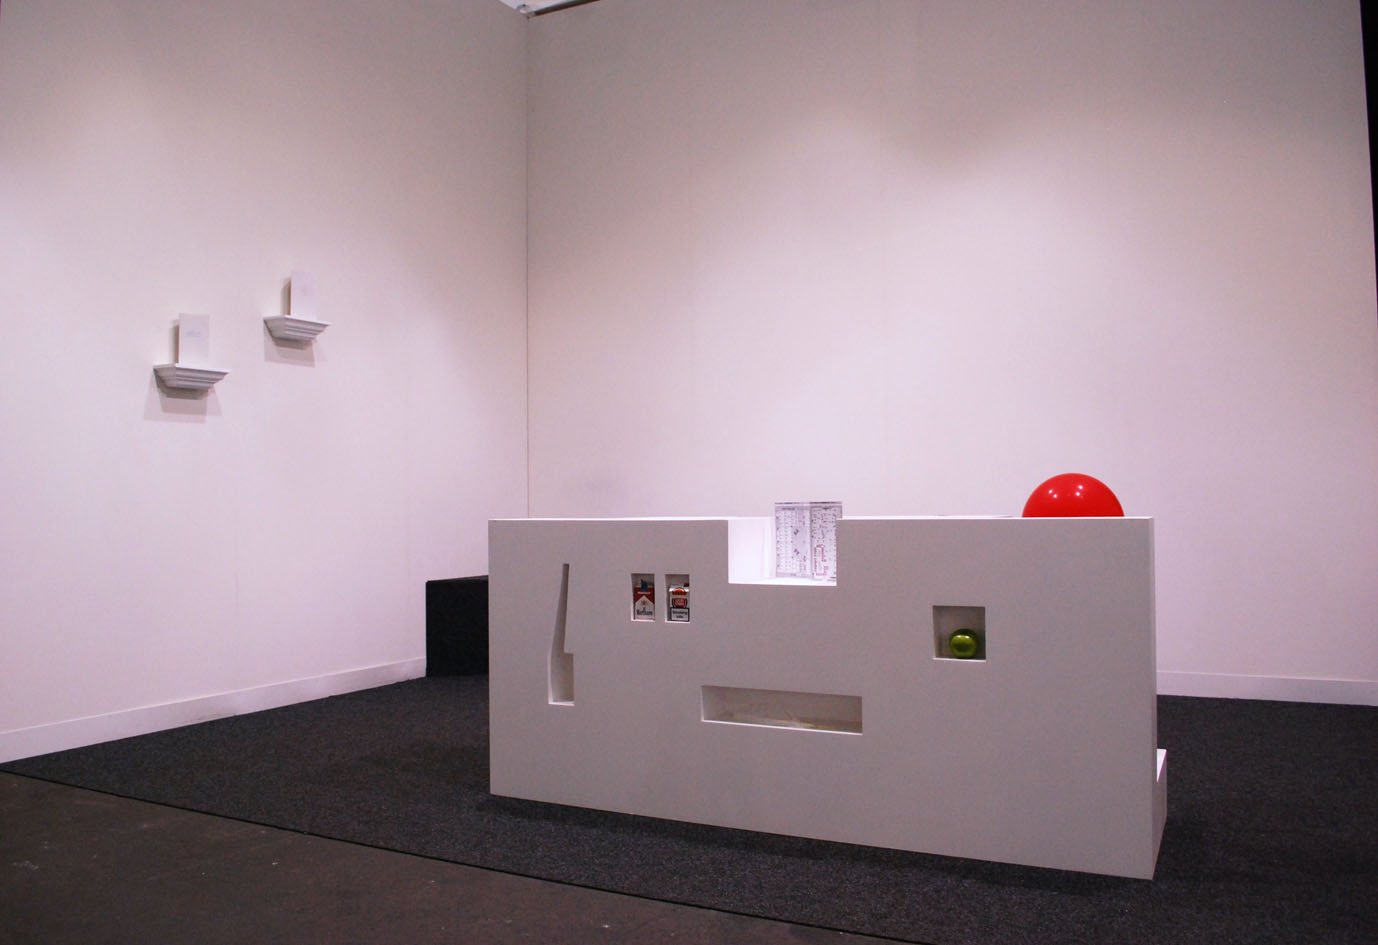 Alexandre Singh, The dialogues of the objects I-V, 2011, installation view, Harris Lieberman, Nyc